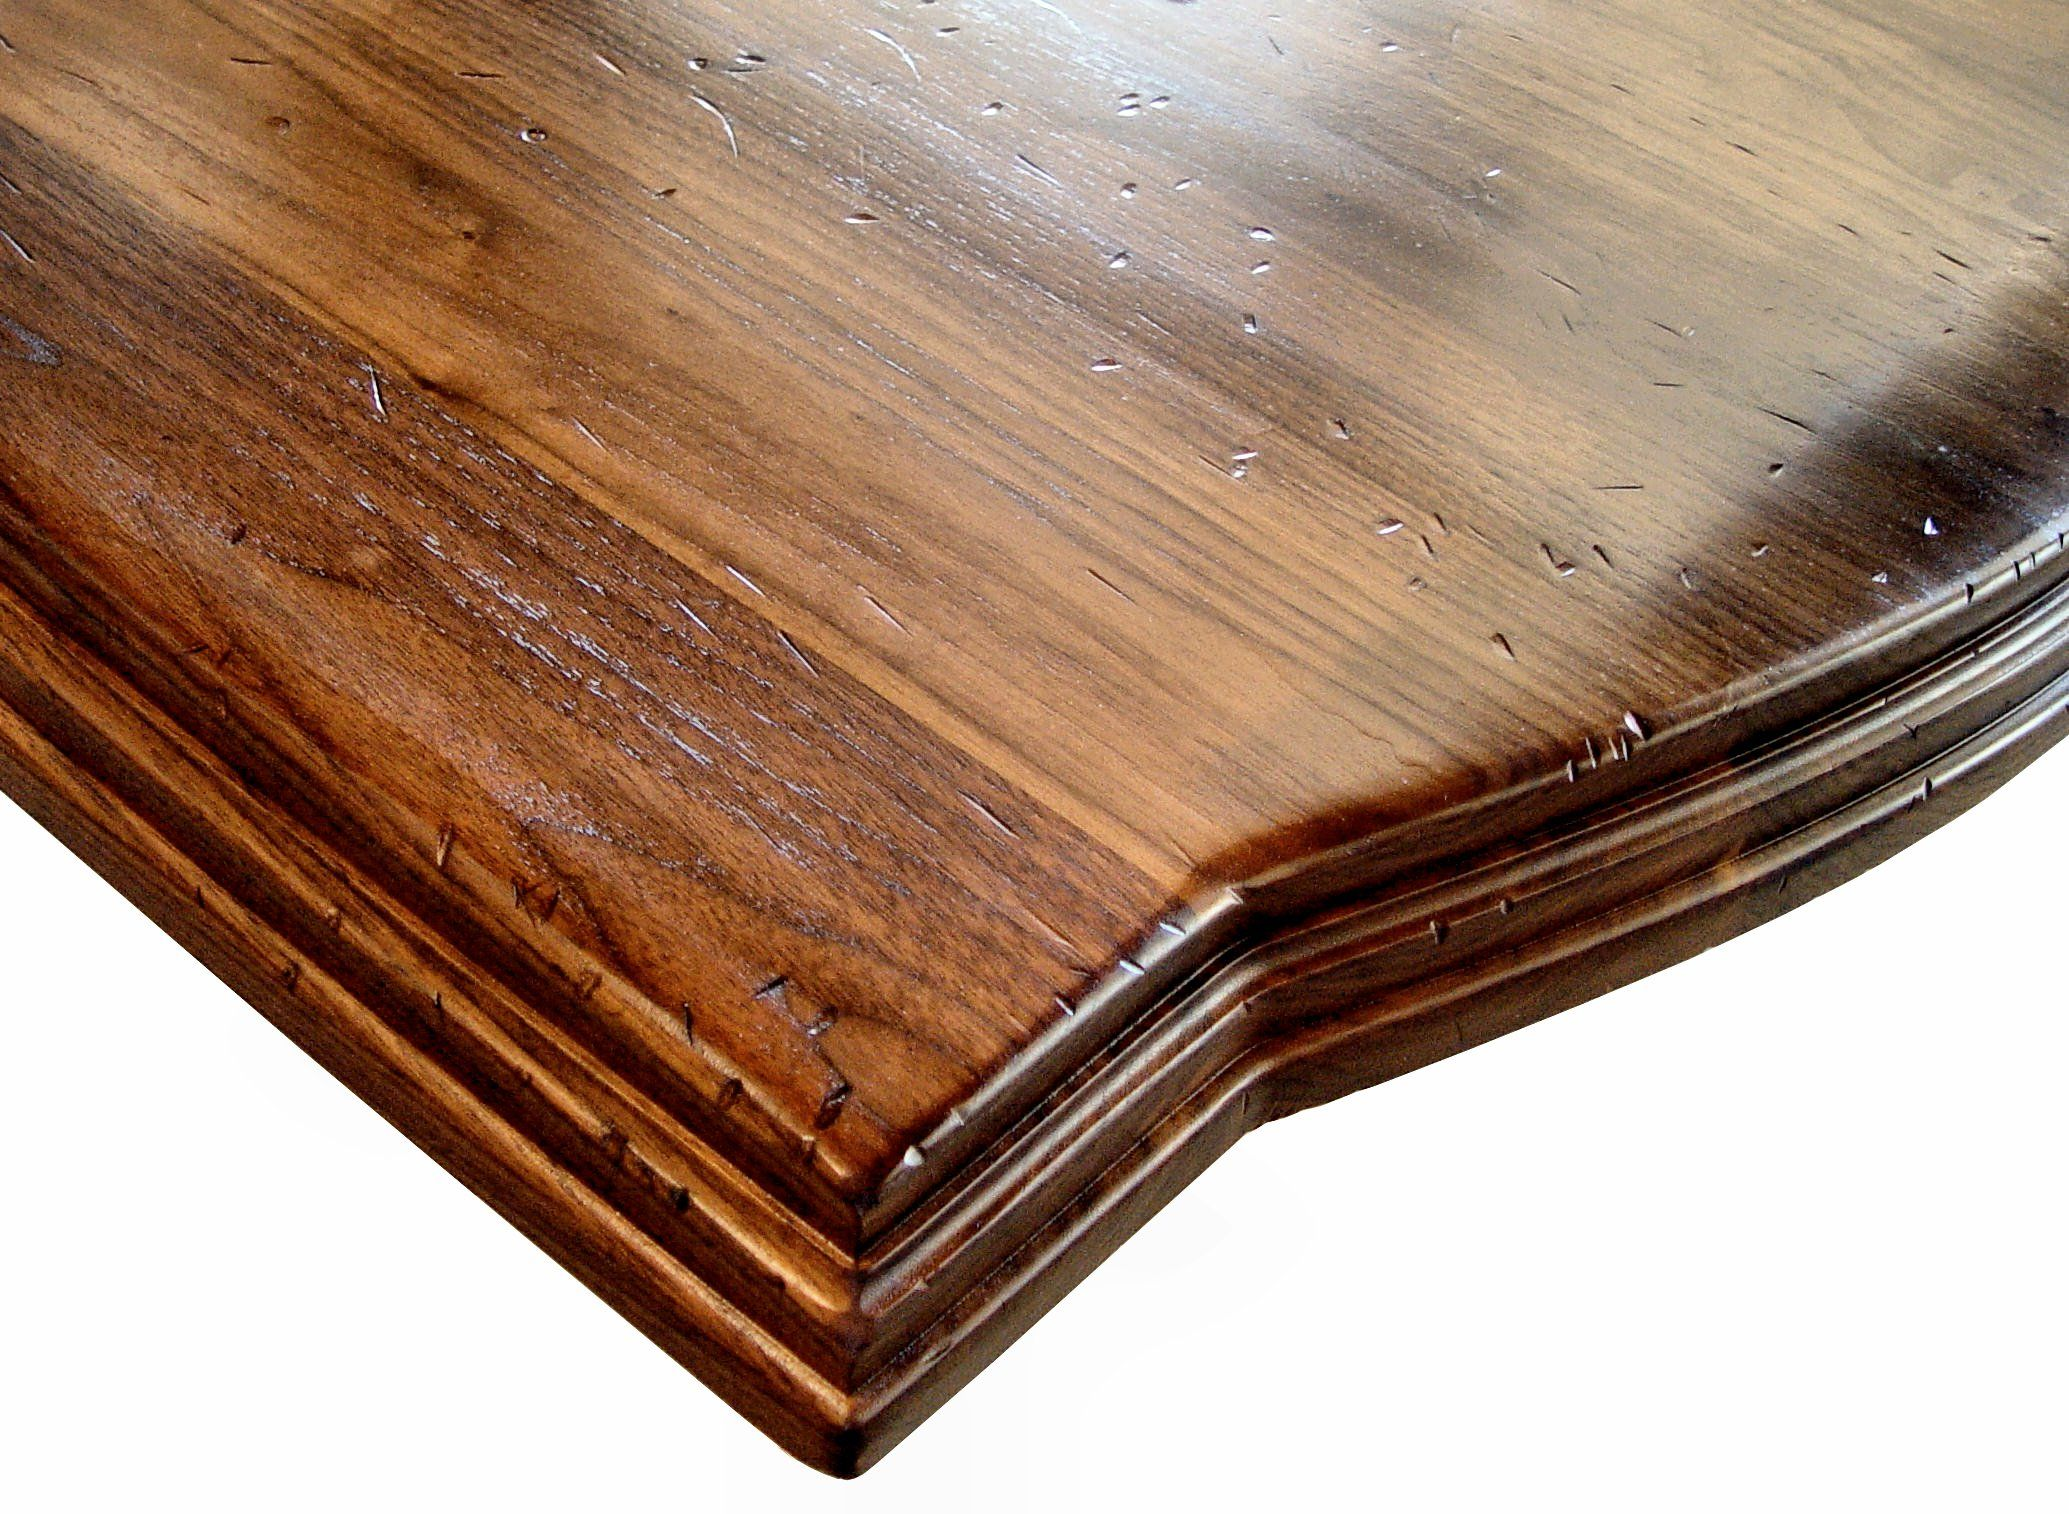 Face Grain Walnut Island Top With Distressing